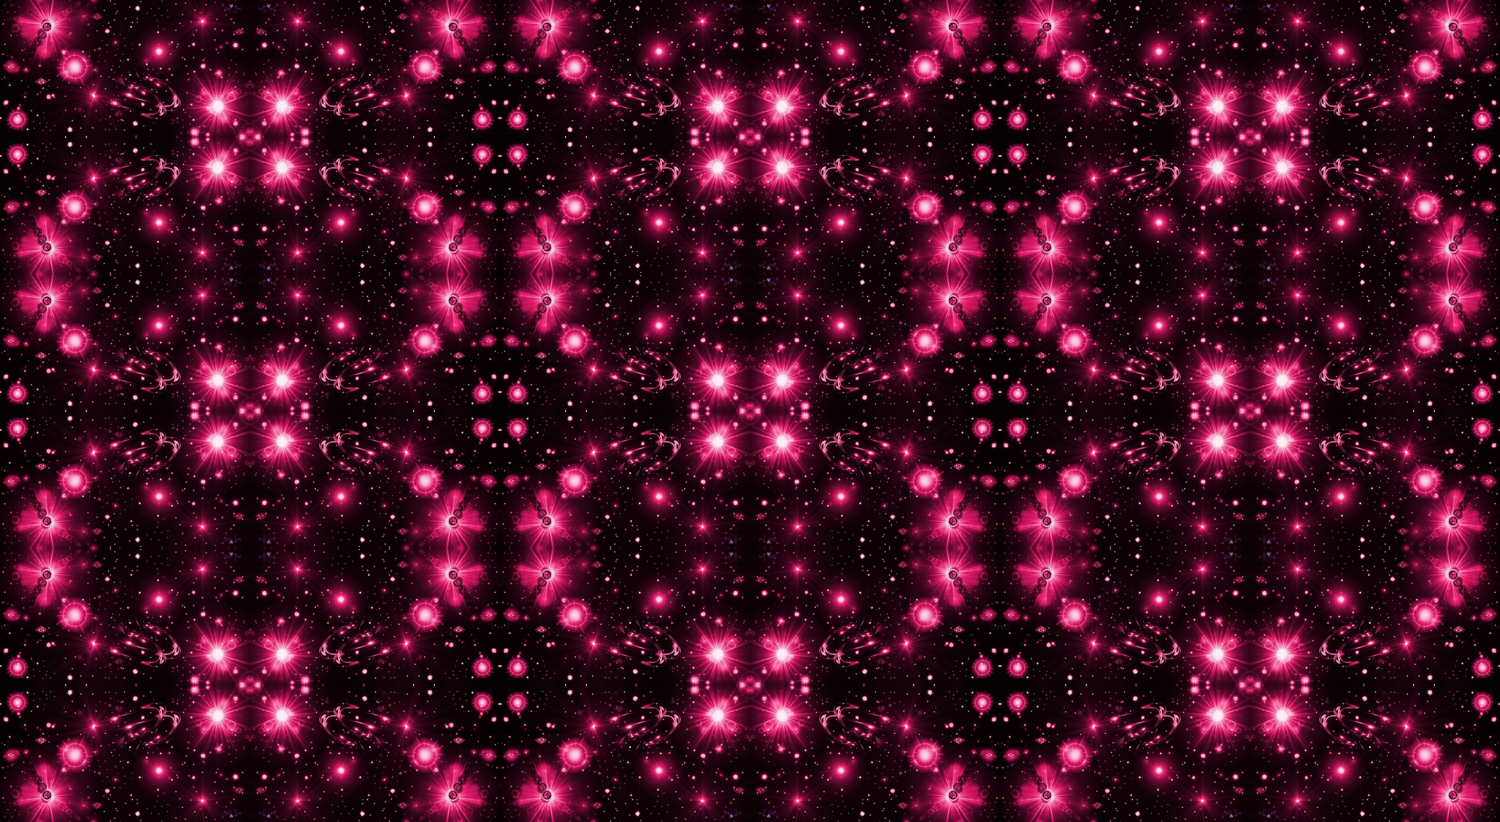 Hot Pink Wallpaper 5 Background - Hdblackwallpaper.com